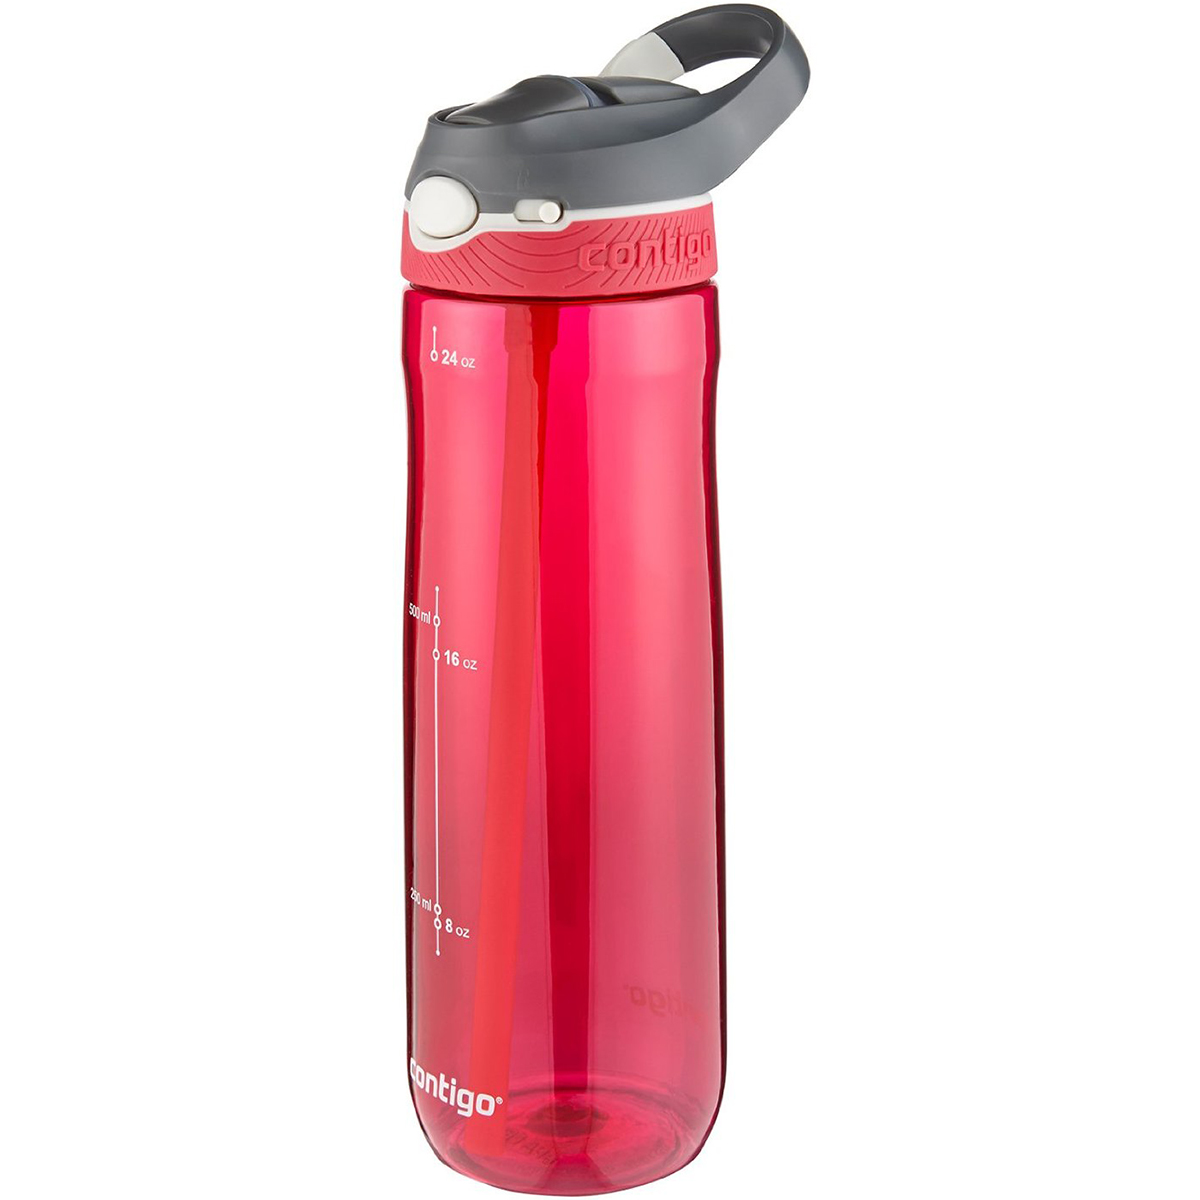 Contigo-24-oz-Ashland-Autospout-Water-Bottle miniatura 24